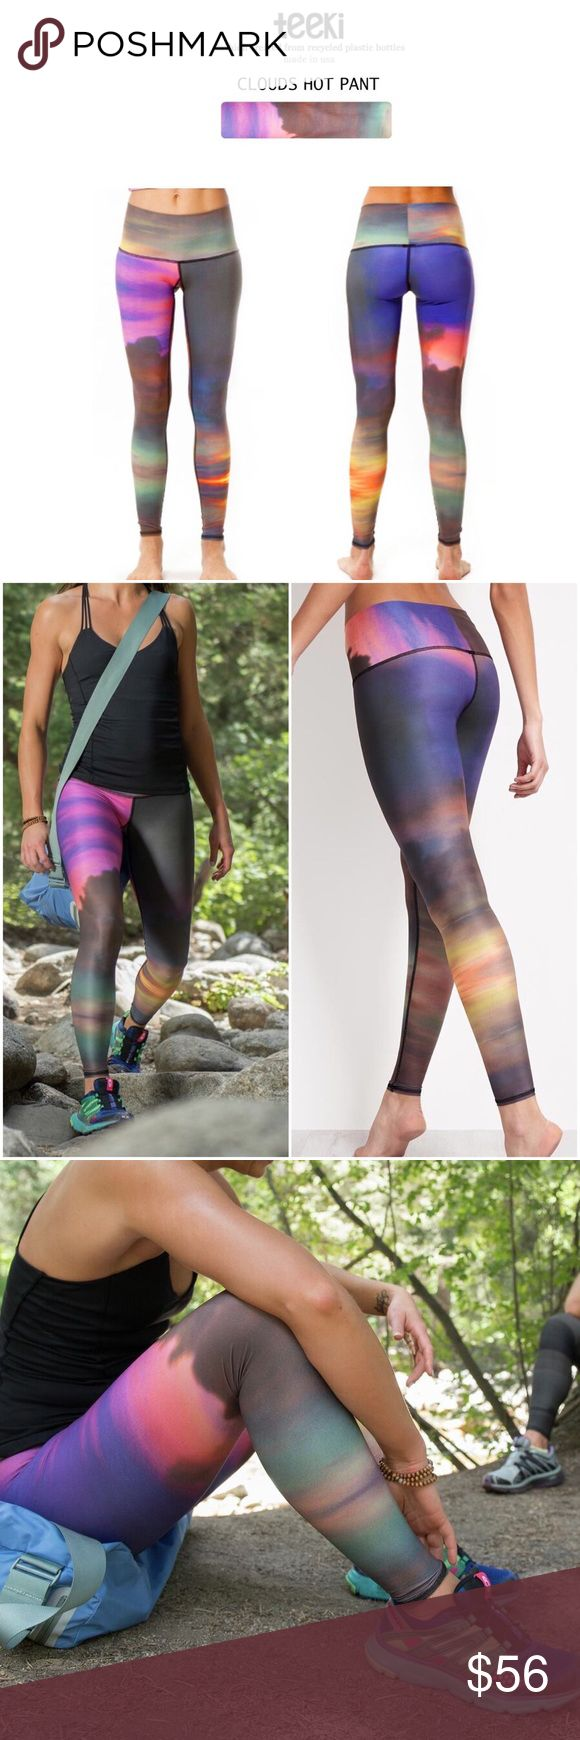 """Teeki Cloud Yoga Hot Pants Teeki cloud pattern yoga hot pants, leggings. Teeki makes beautiful clothing for yoga and lifestyle wear. Their Hot Pants such as the """"Clouds"""" Hot Pants are perfect for hot or bikram yoga. 4-way stretch. Awesome lightweight feel that holds you in & dries quickly, beautiful eye-popping print is the material. By wearing these pants you'll be recycling 25 plastic bottles.  Why we love: The most beautiful yoga leggings we've seen for awhile Fabric: 79% recycled…"""